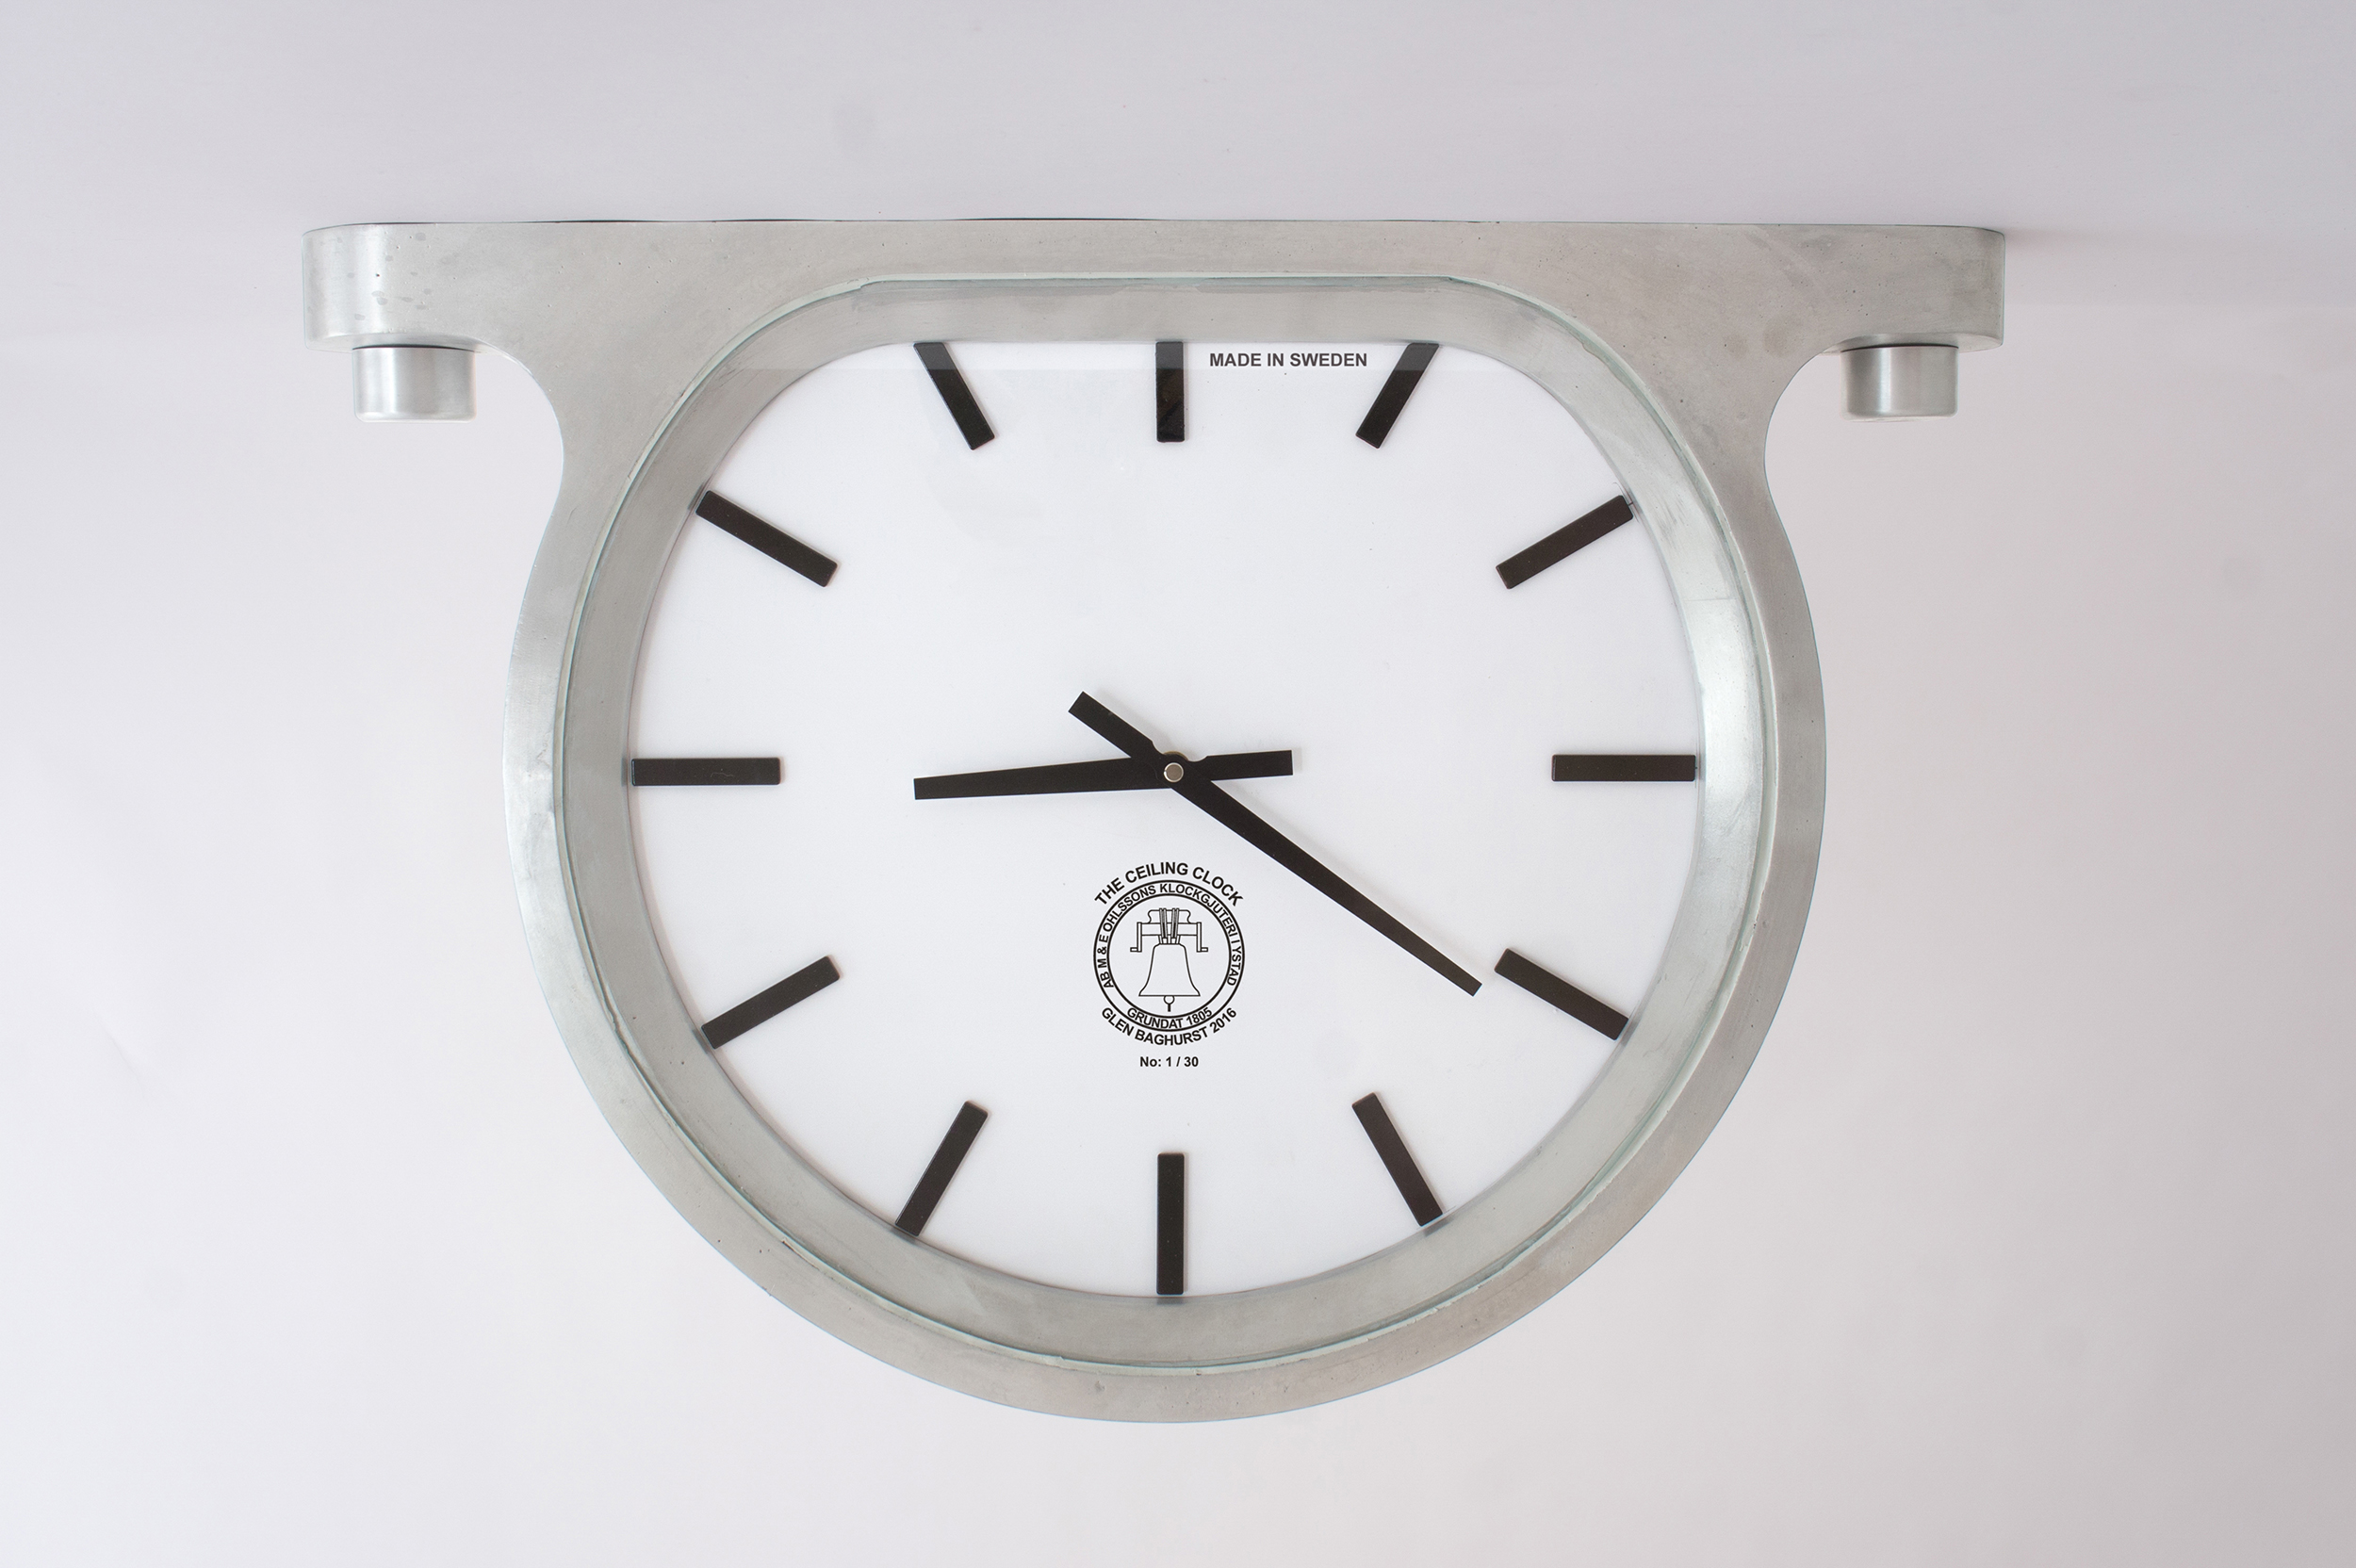 The Ceiling Clock